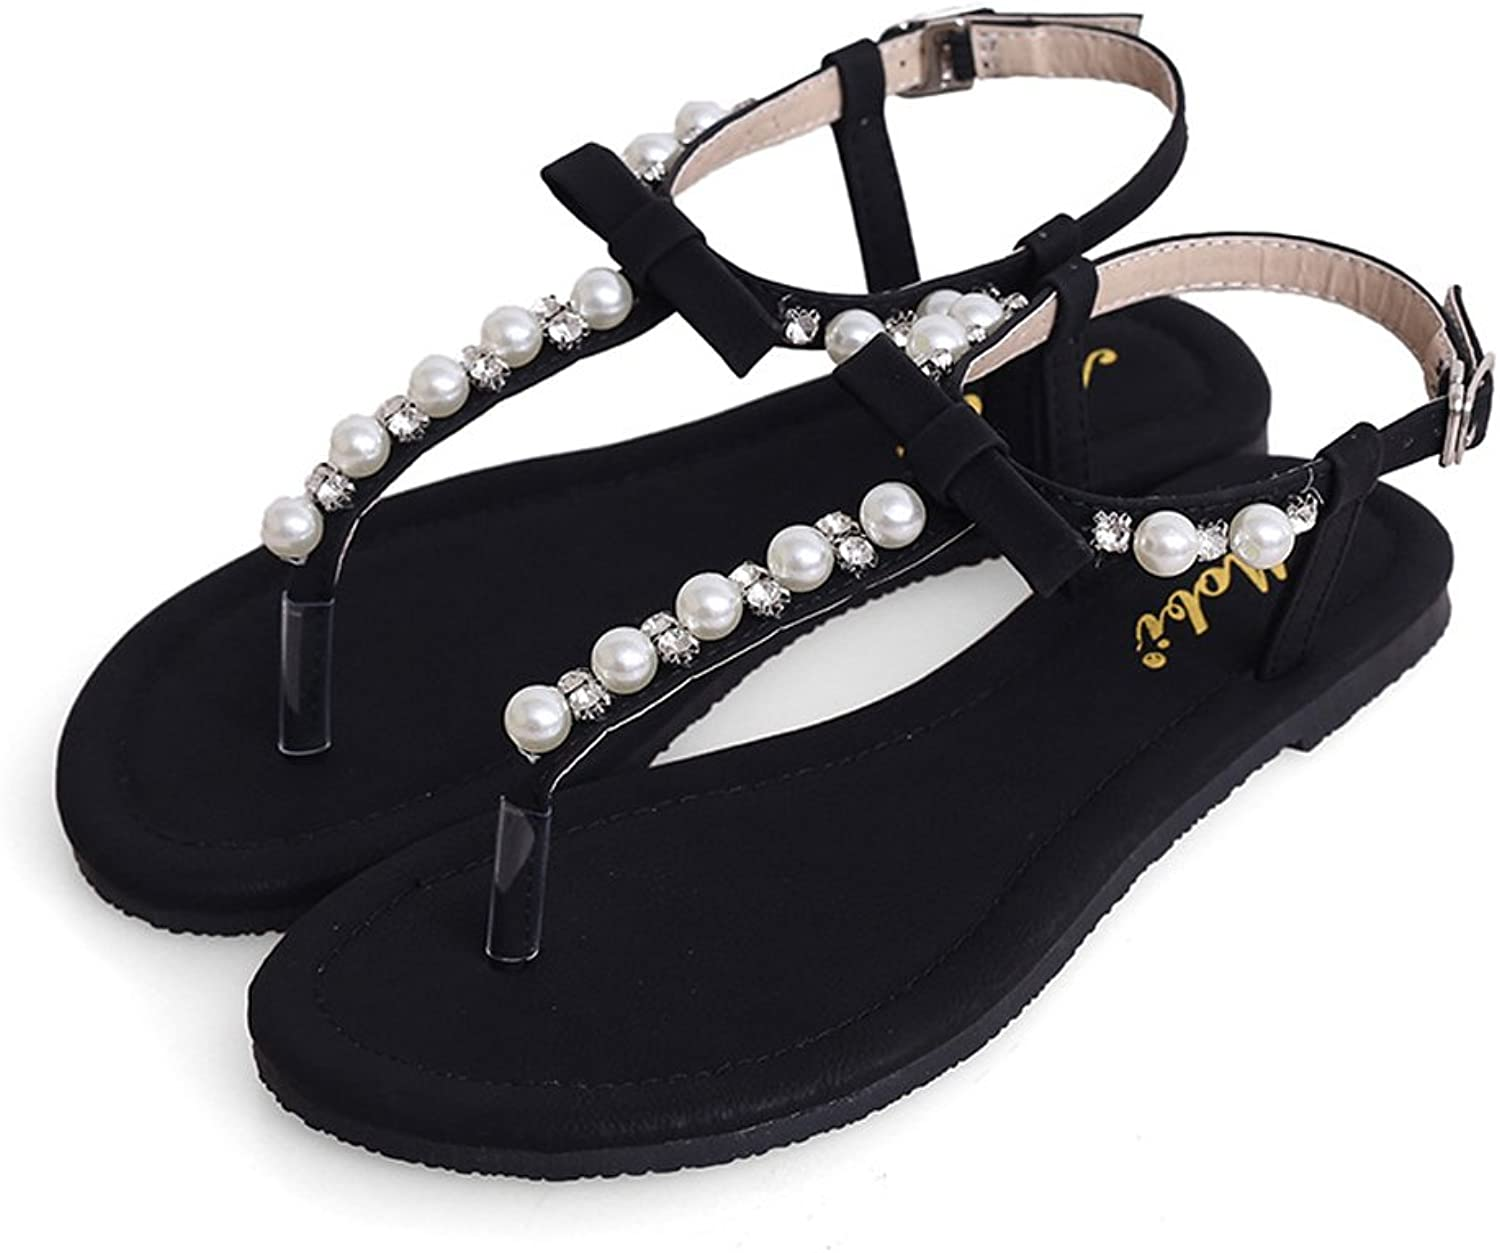 Mobnau Women's Leather Pearls Sandals Thong Sandles